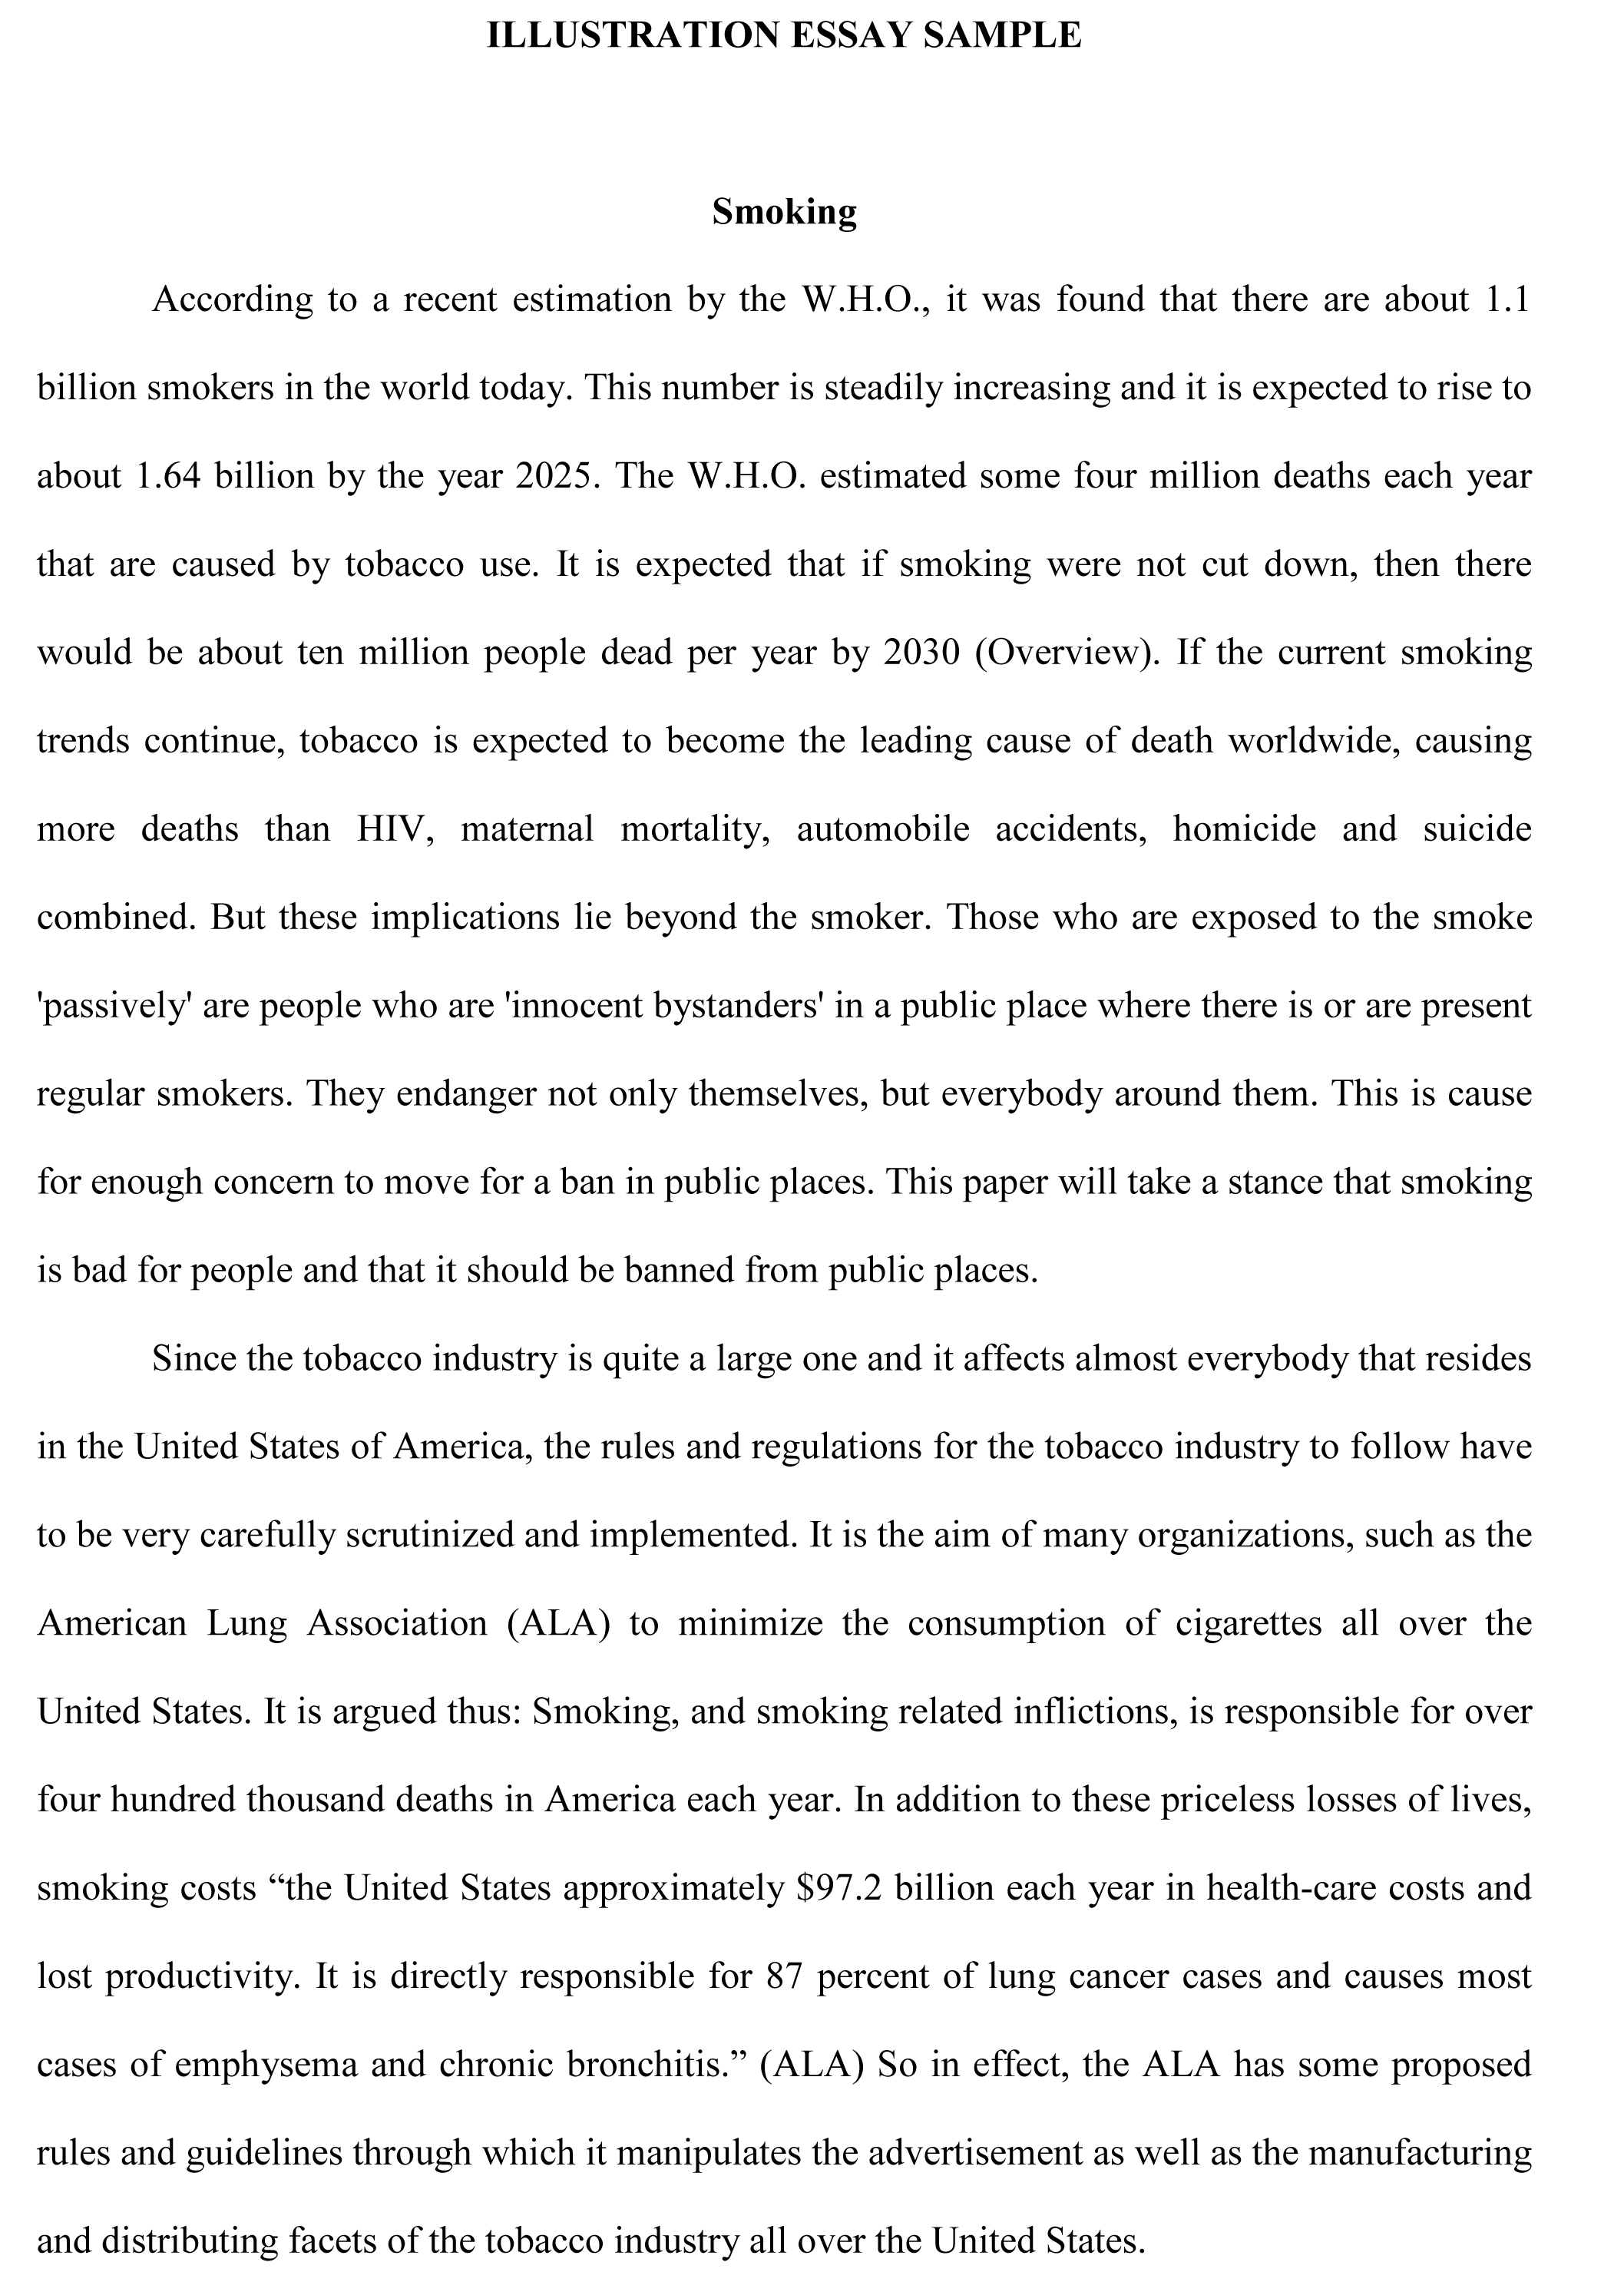 005 Illustration Essay Sample Anorexia Best Nervosa Conclusion Introduction Paper Outline Full